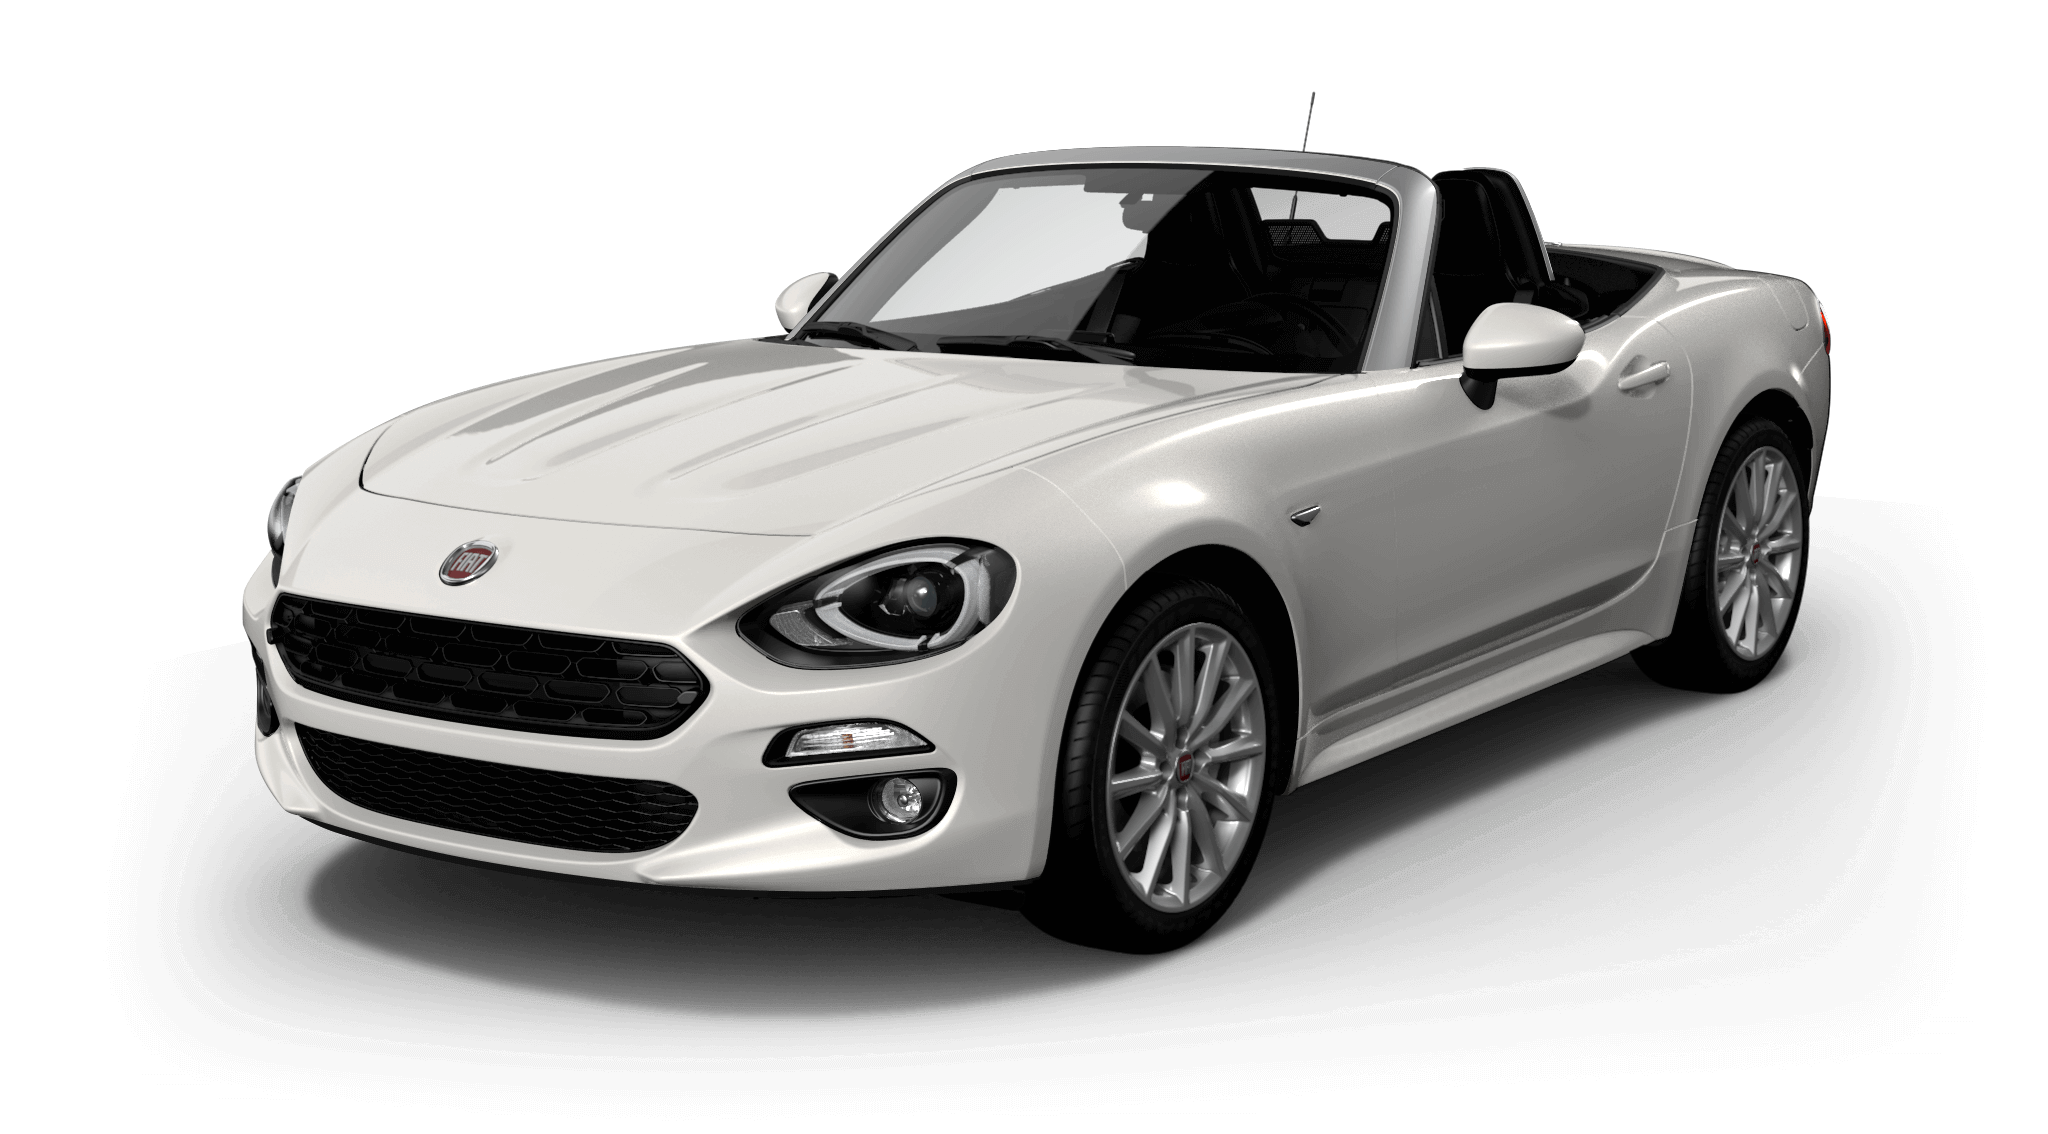 nouvelle fiat 124 spider roadster cabriolet. Black Bedroom Furniture Sets. Home Design Ideas